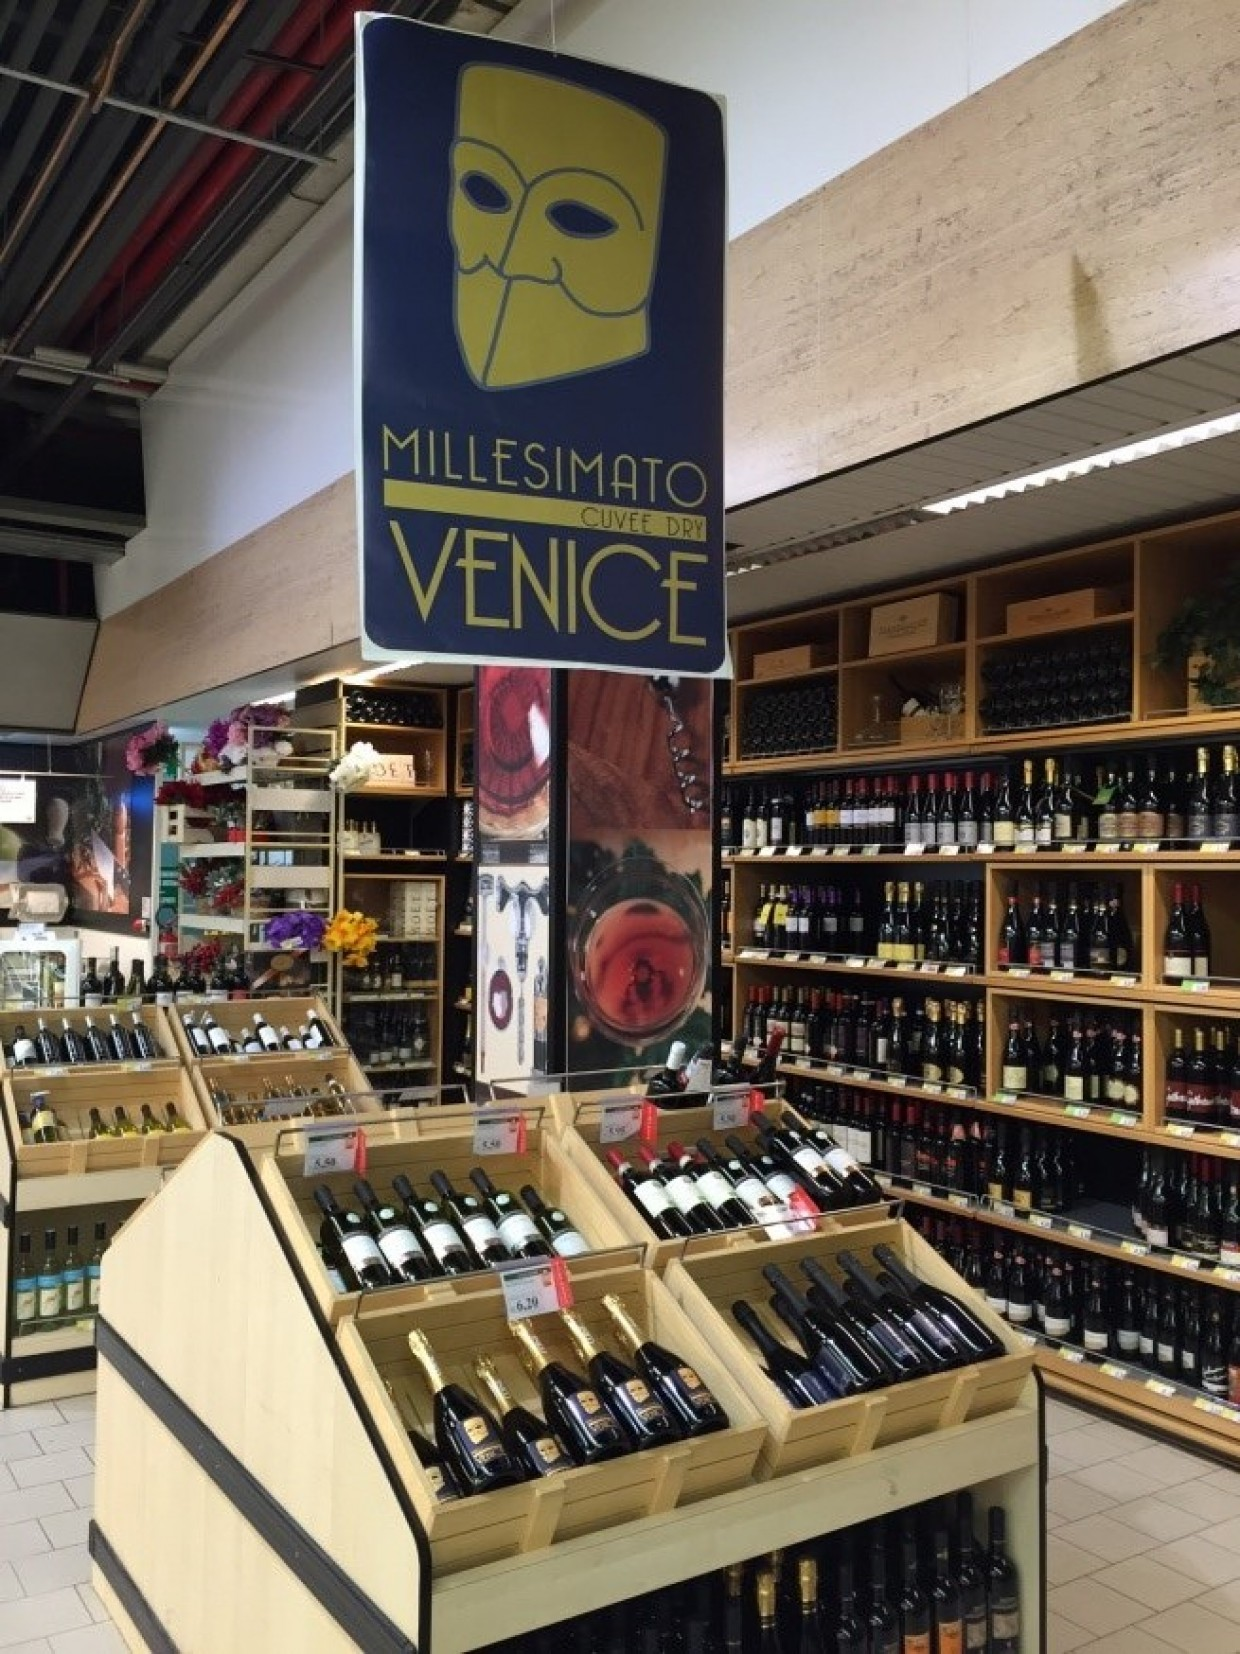 The cooperative Gelsi present Venice cuvée extradry